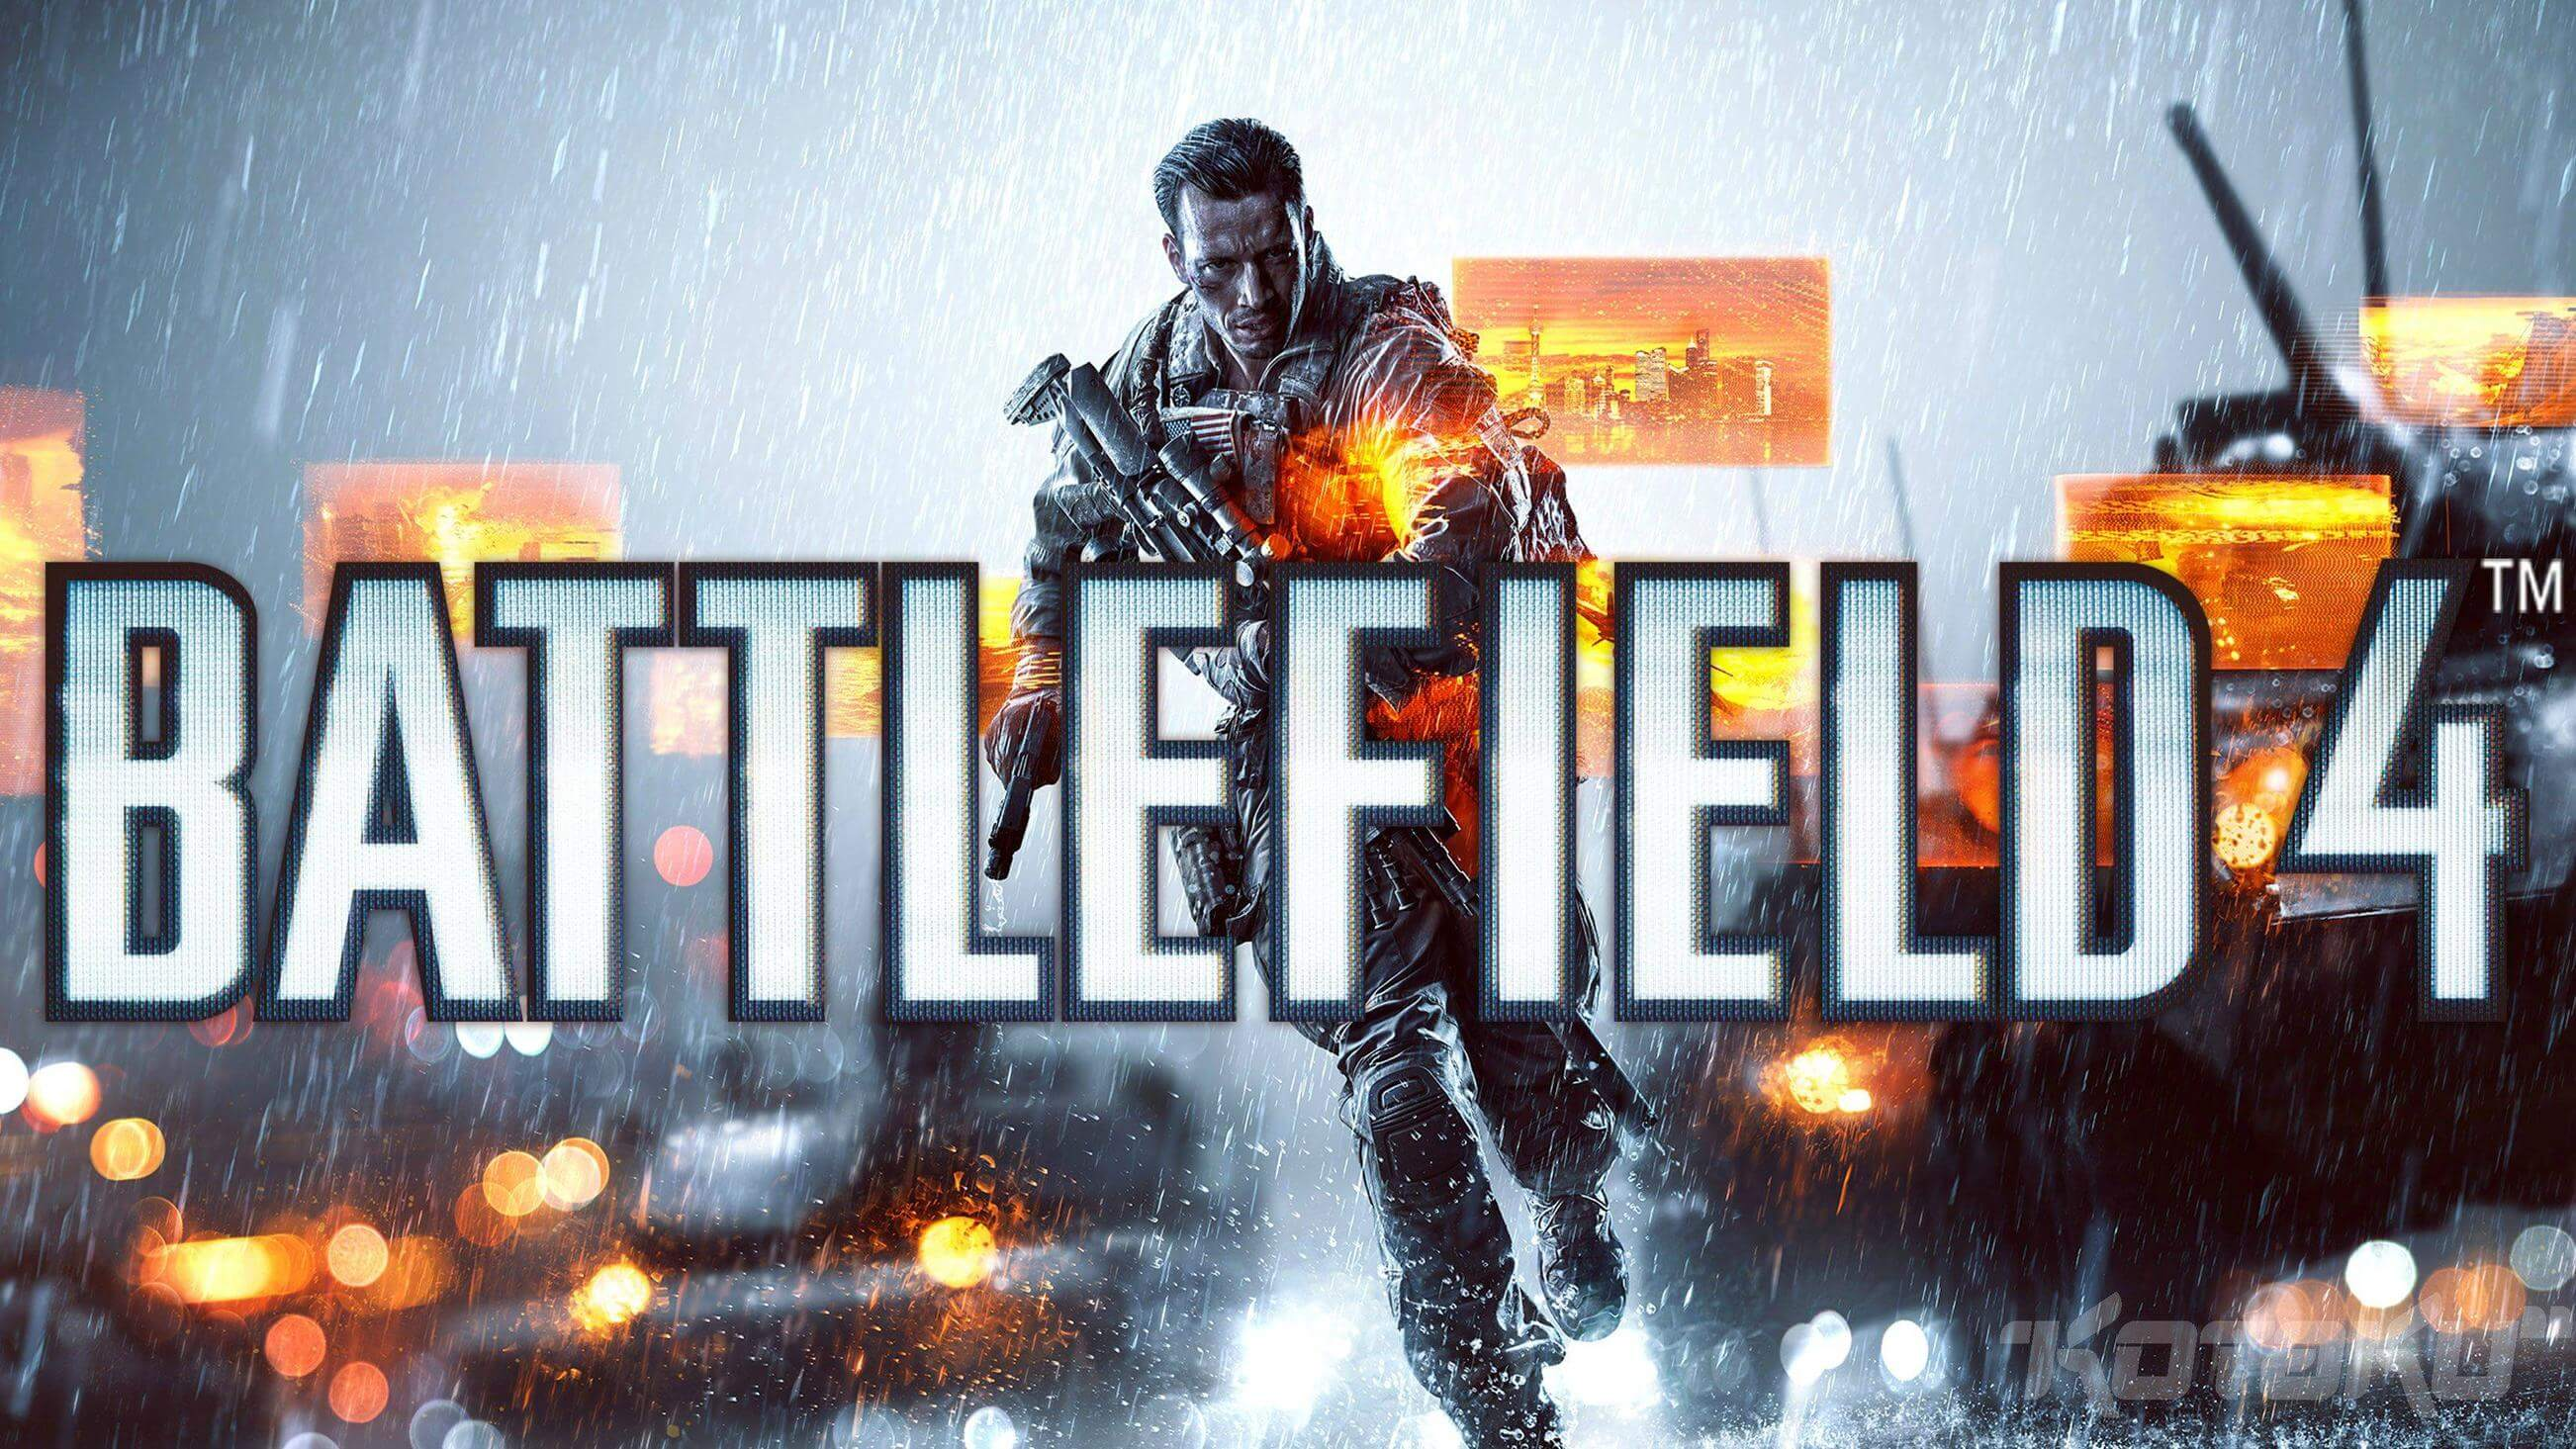 'Battlefield 4' Likely To Have 'Commander Mode'; No Motion Control 'Gimmicks'